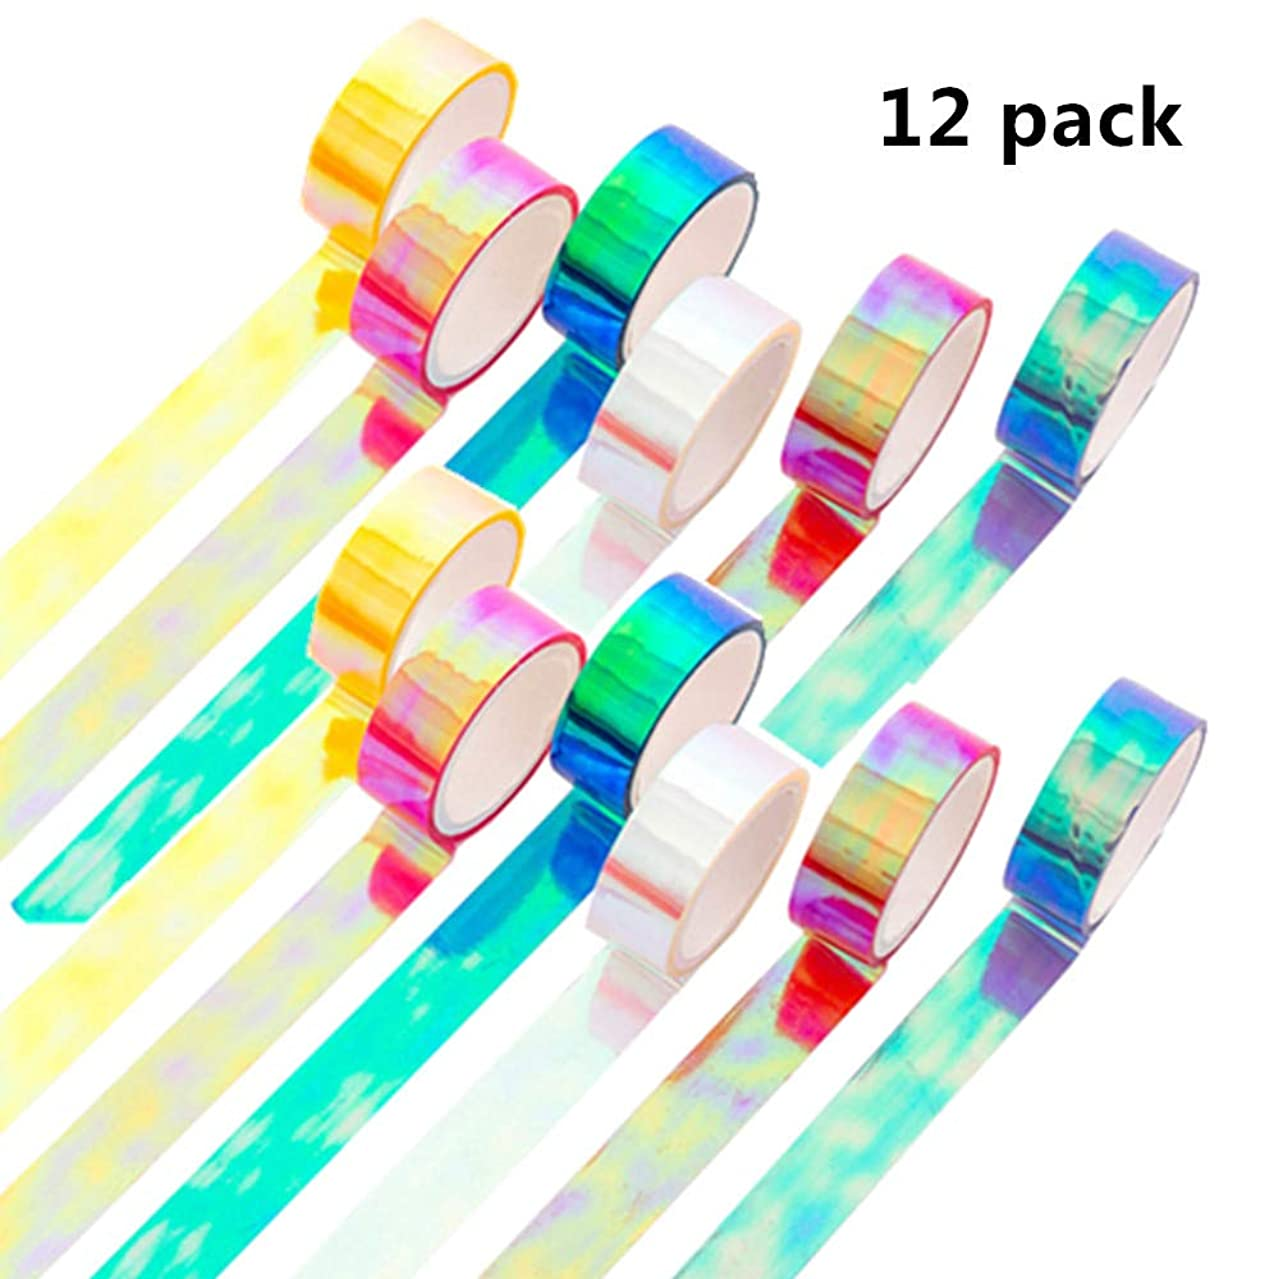 Holographic Rainbow Colored Masking Tape Decorative Craft Waterproof Adhesive Iridescent Tape 12 Roll Variety Kit-Assorted Color Craft Kit Tape for Boy Girl DIY Arts Decor